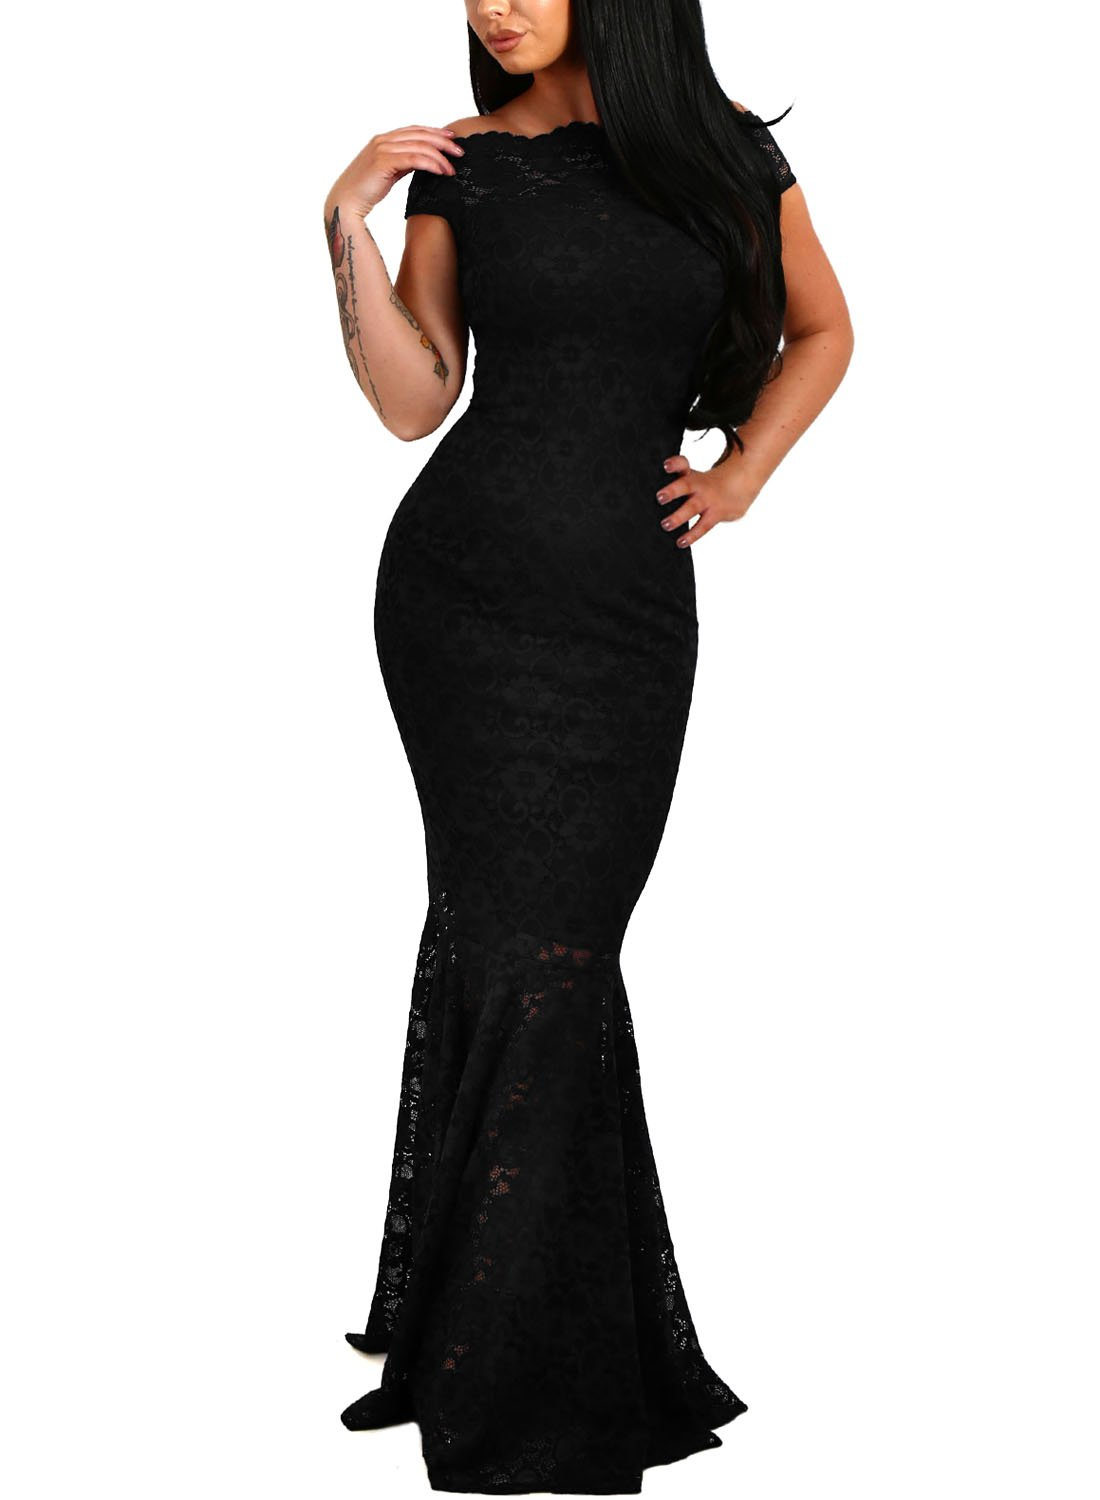 Elapsy Womens Sexy Elegant Off Shoulder Bardot Lace Evening Gown Fishtail Maxi Party Formal Dress Black Large